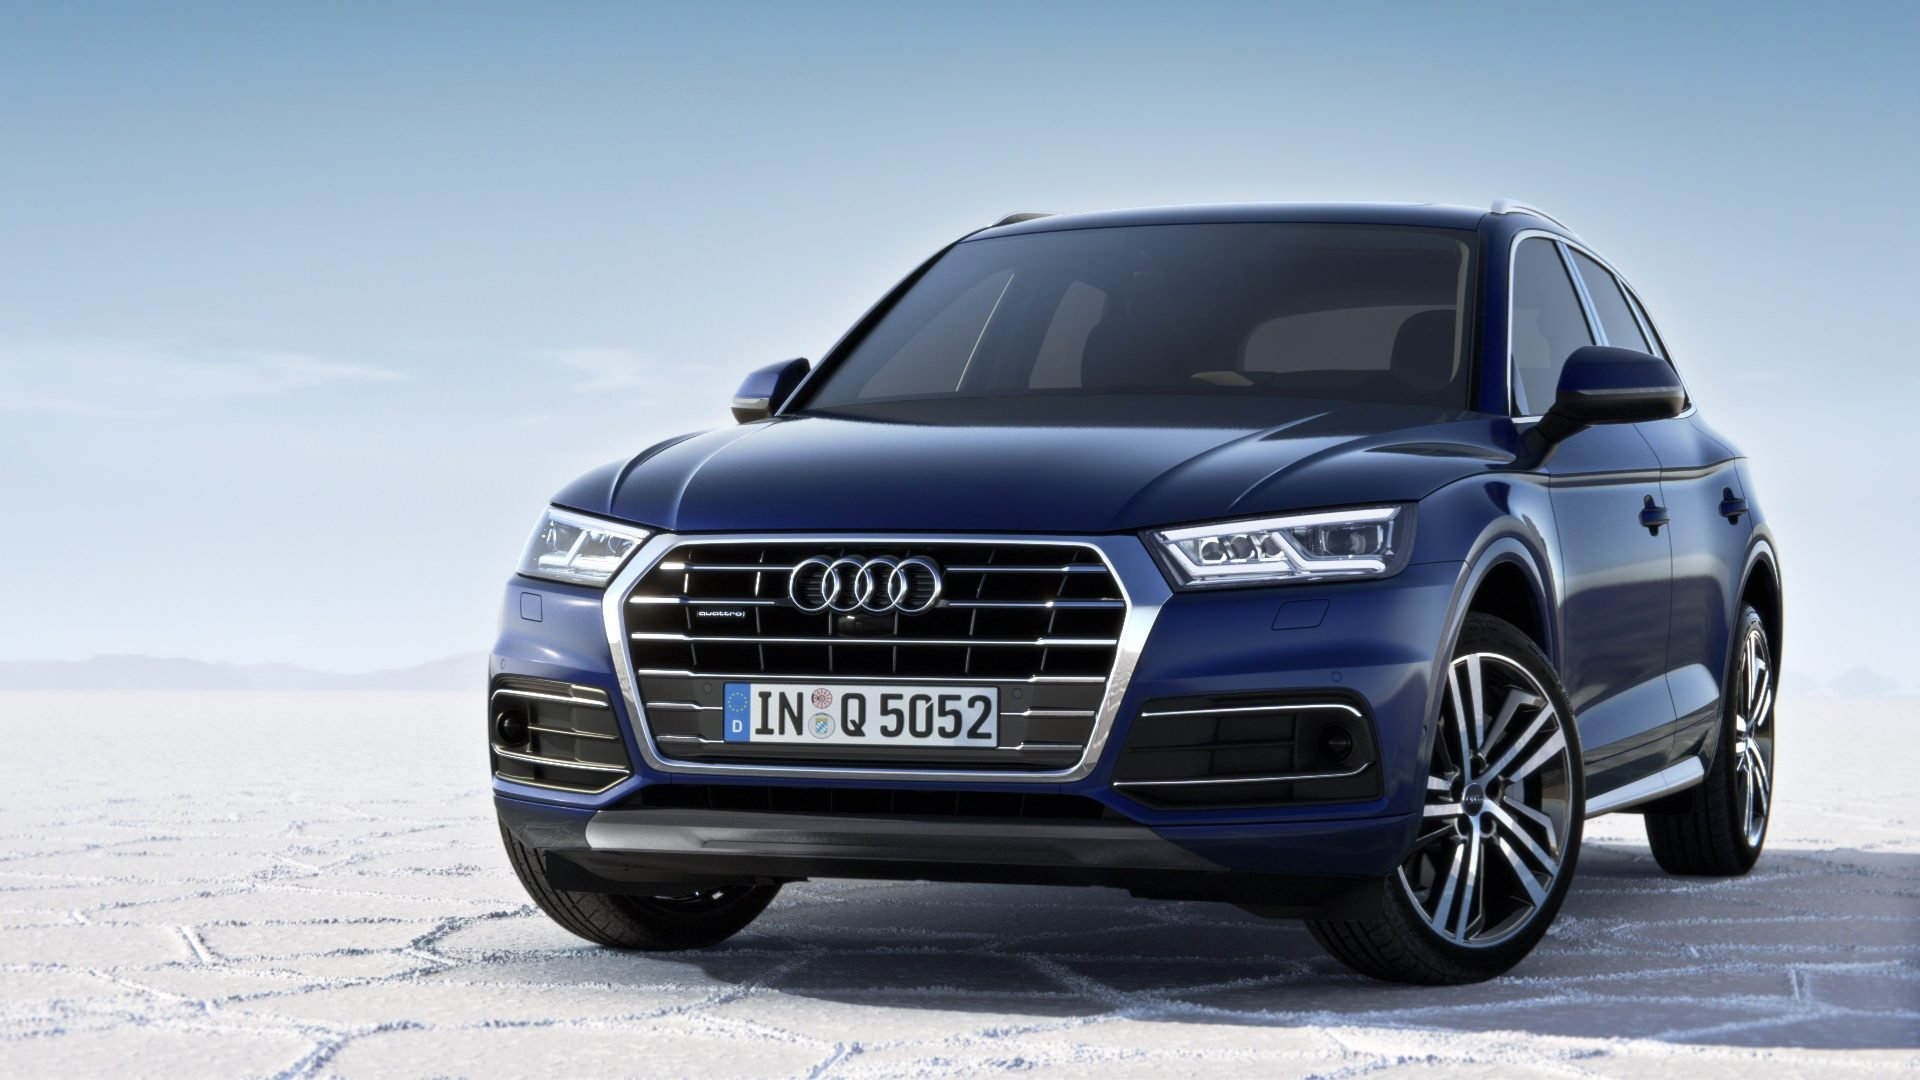 Latest Audi Q5 Luxury Crossover Suv Audi Australia Q5 Free Download